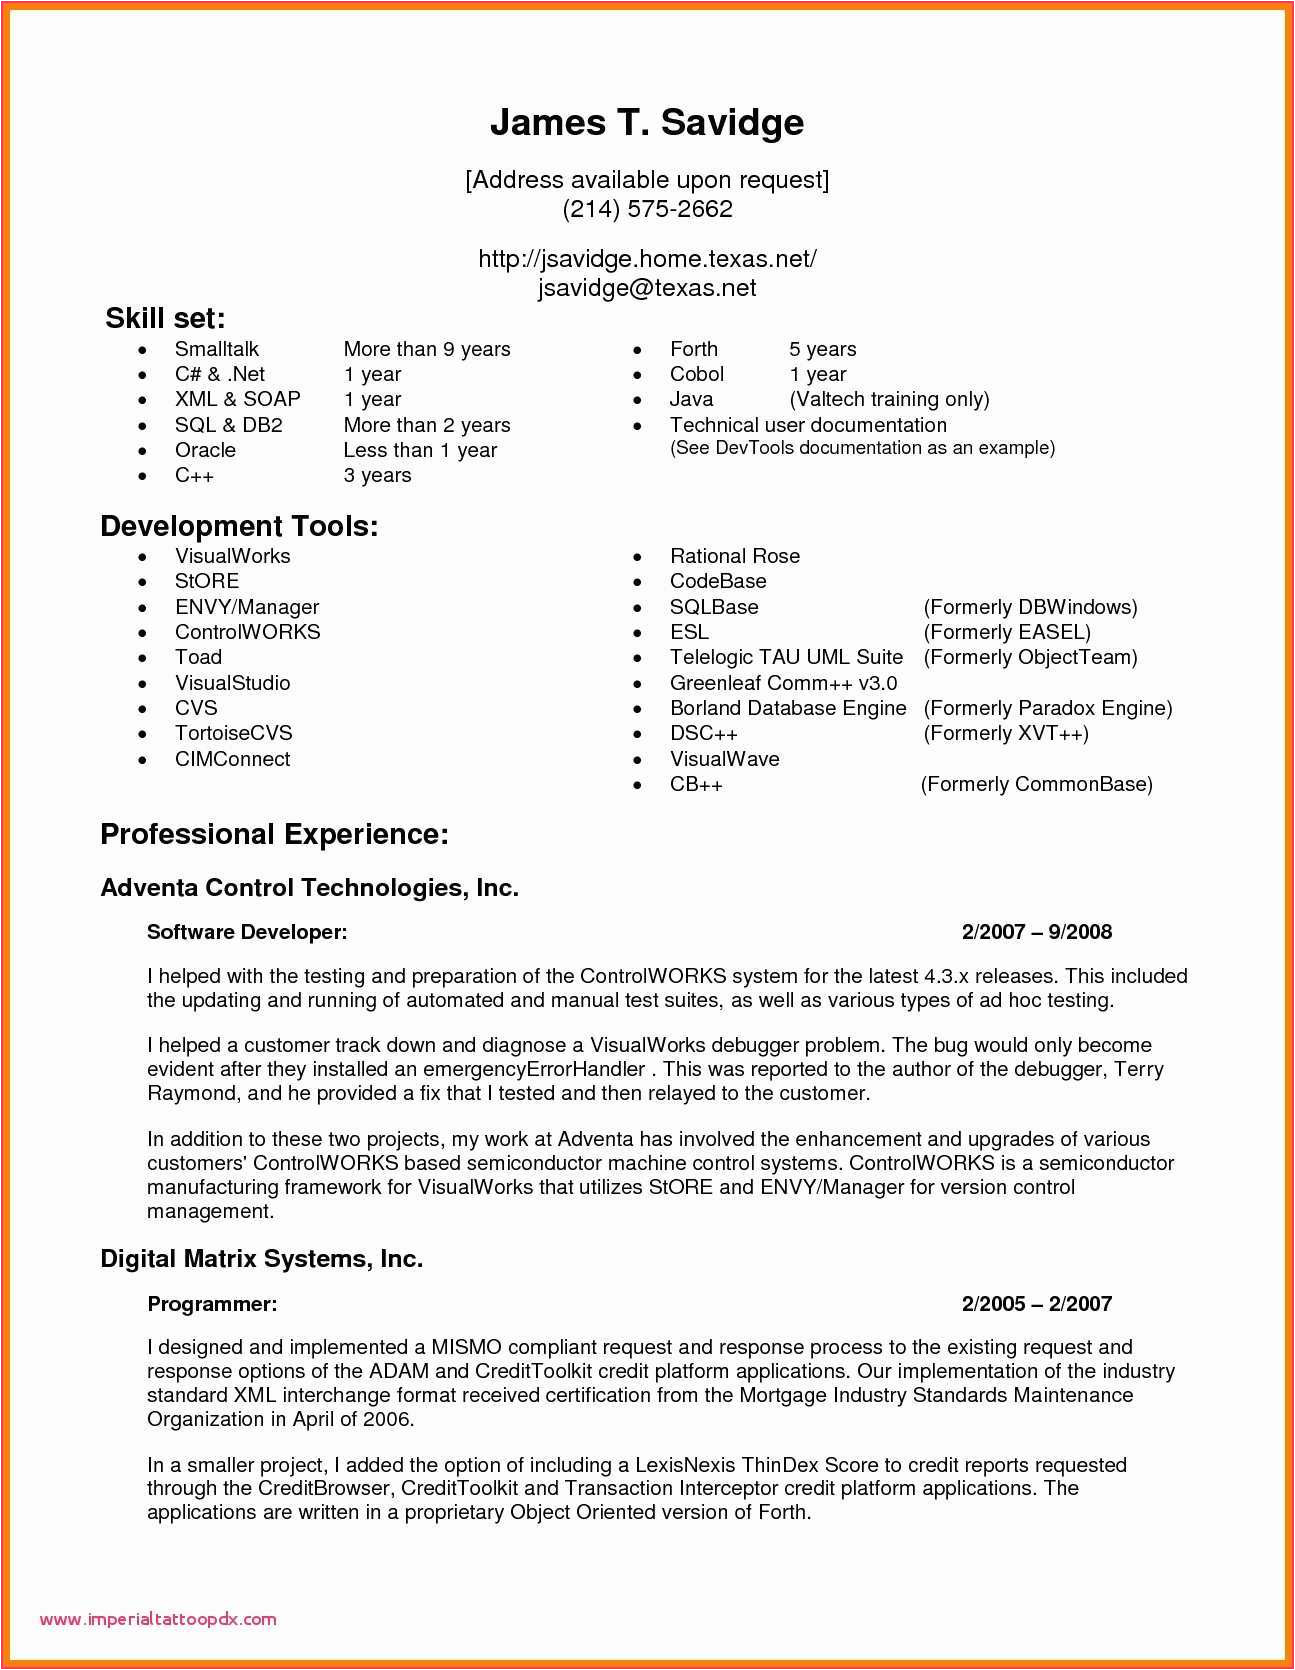 sample resume for experienced candidates in java luxury experience resume for 2 years experience in testing